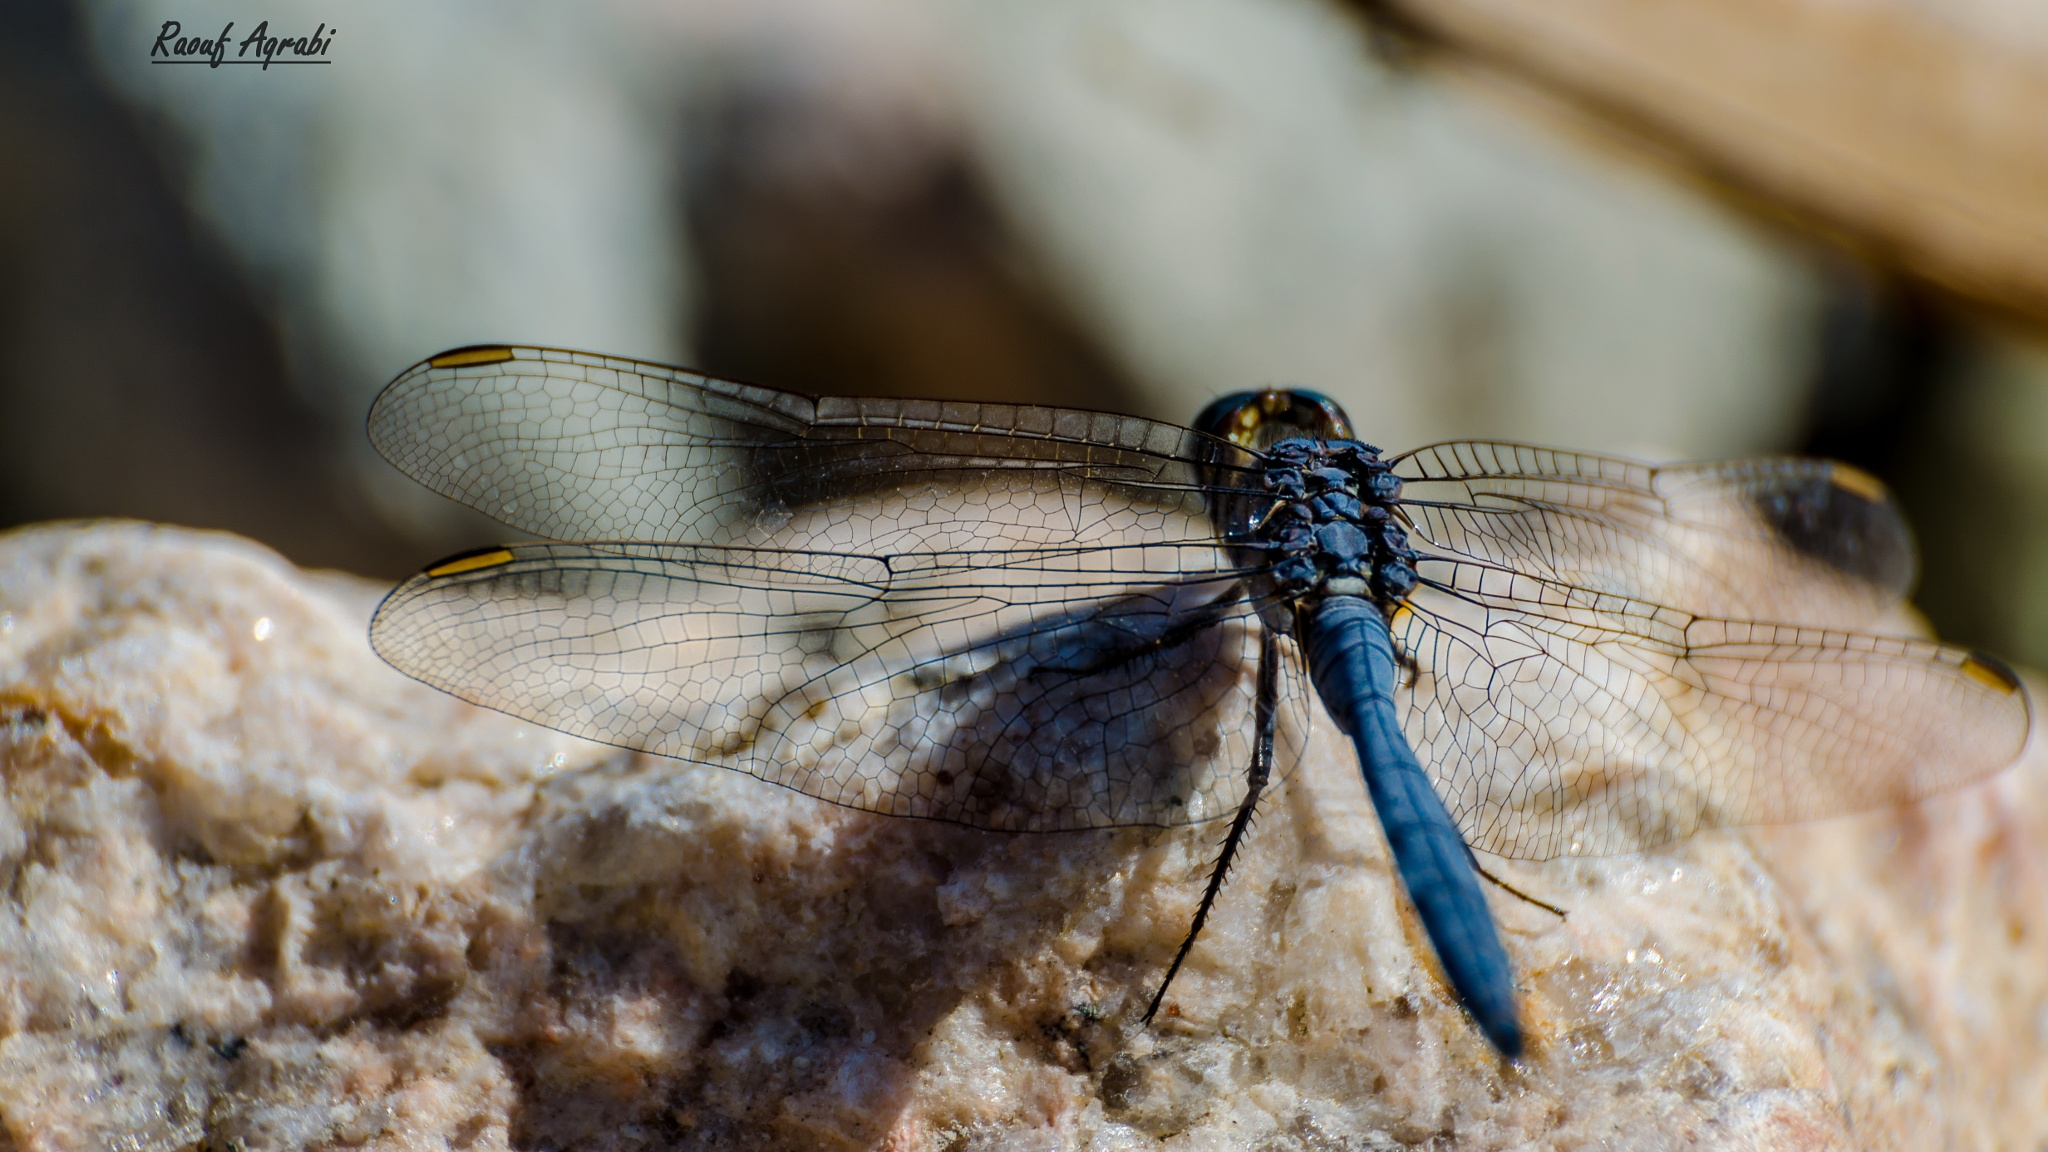 The blue Dragonfly  by Raouf Aqrabi